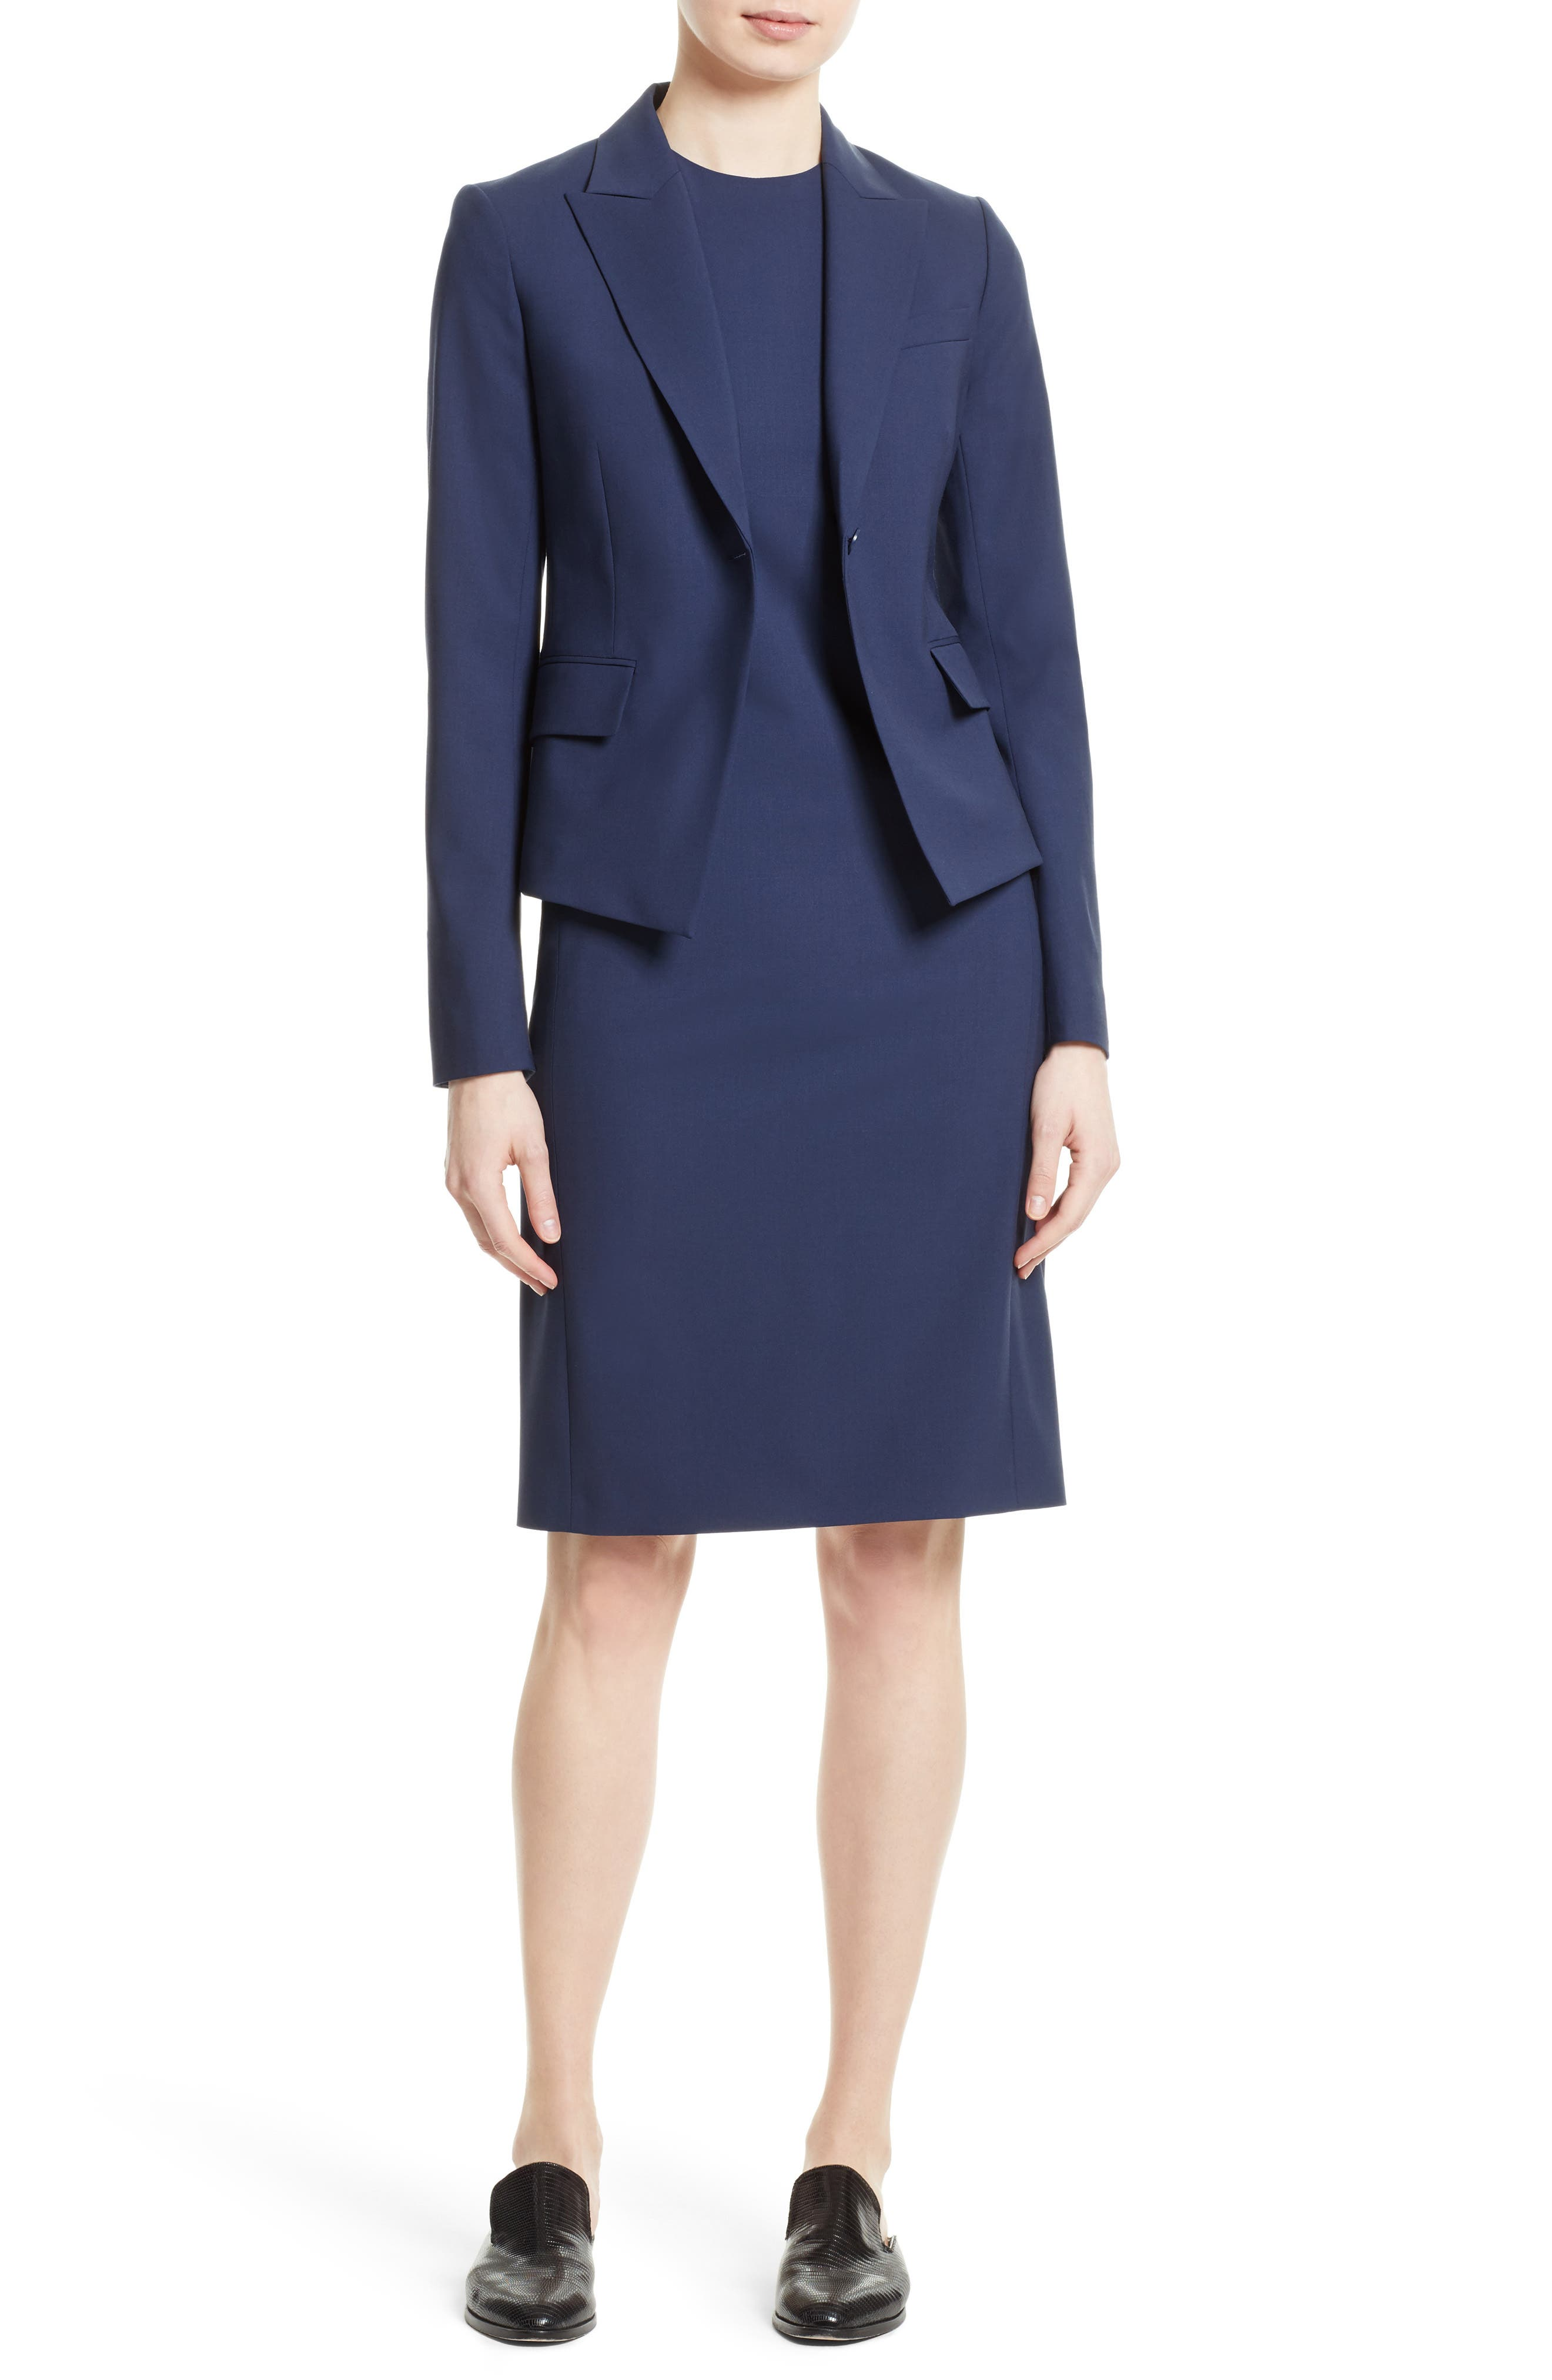 Theory Jacket & Dress Outfit with Accessories